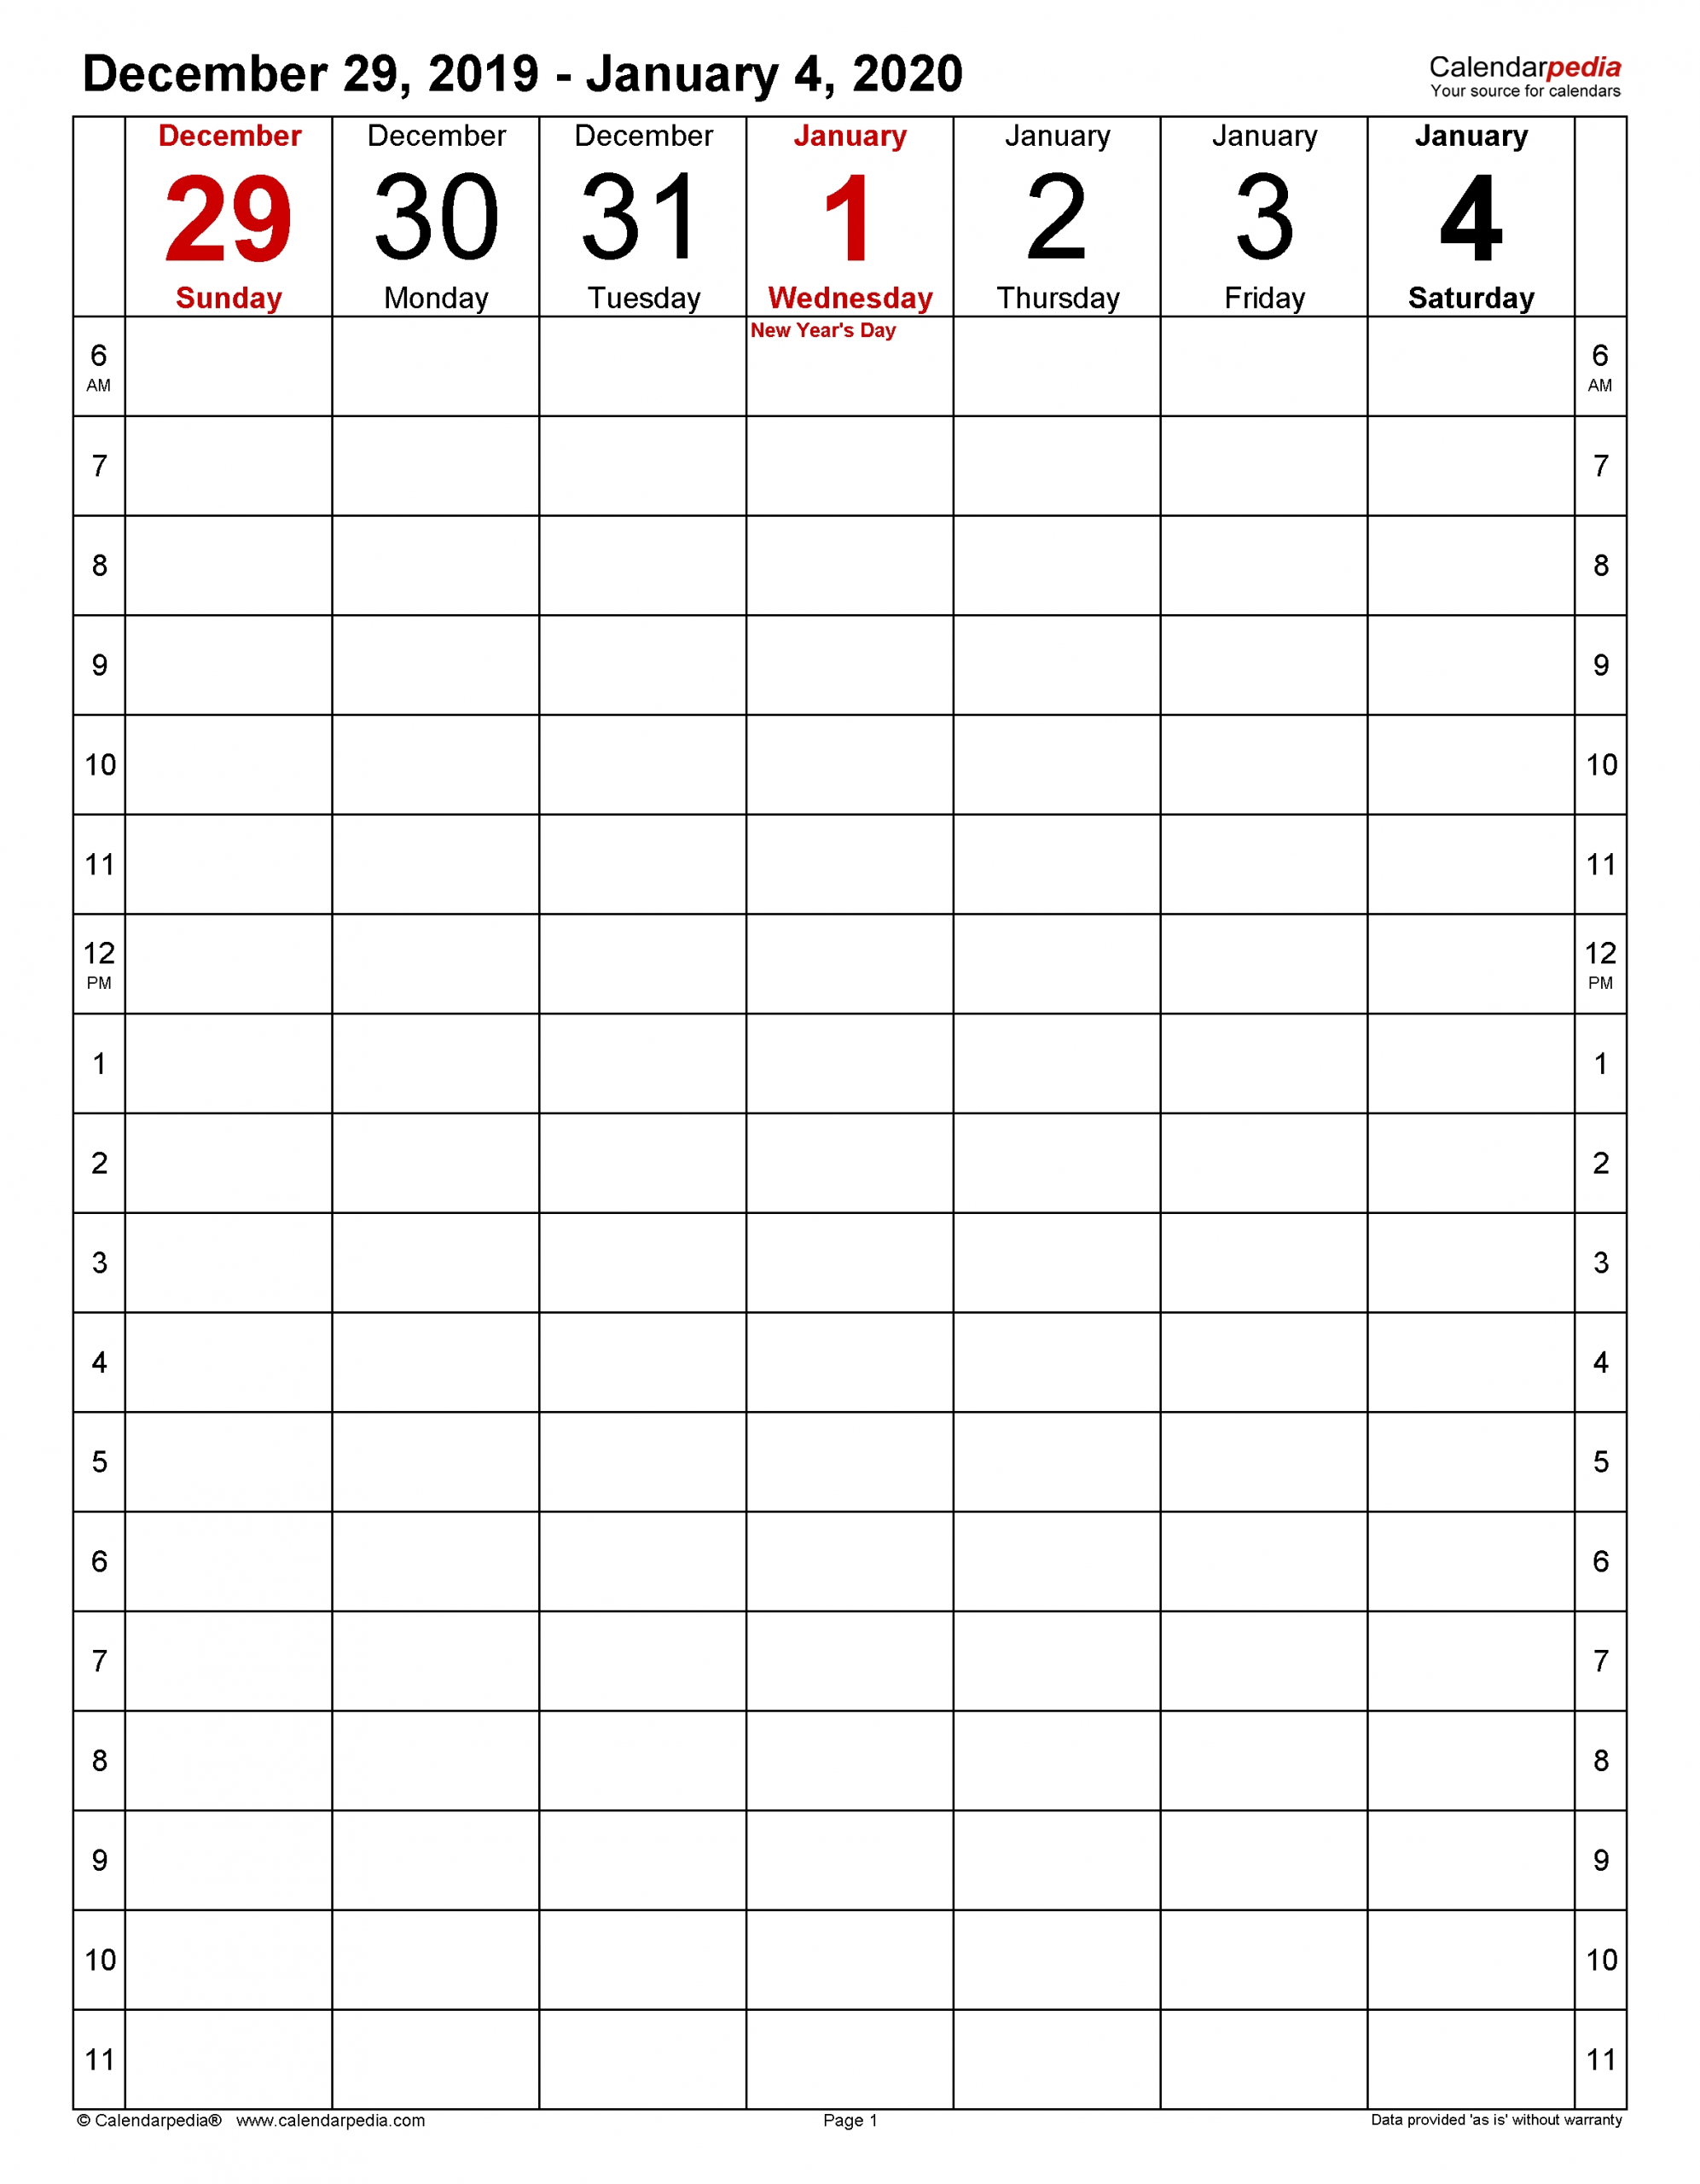 Weekly Calendars 2020 For Word - 12 Free Printable Templates with 2019 2020 Calendar Space To Write